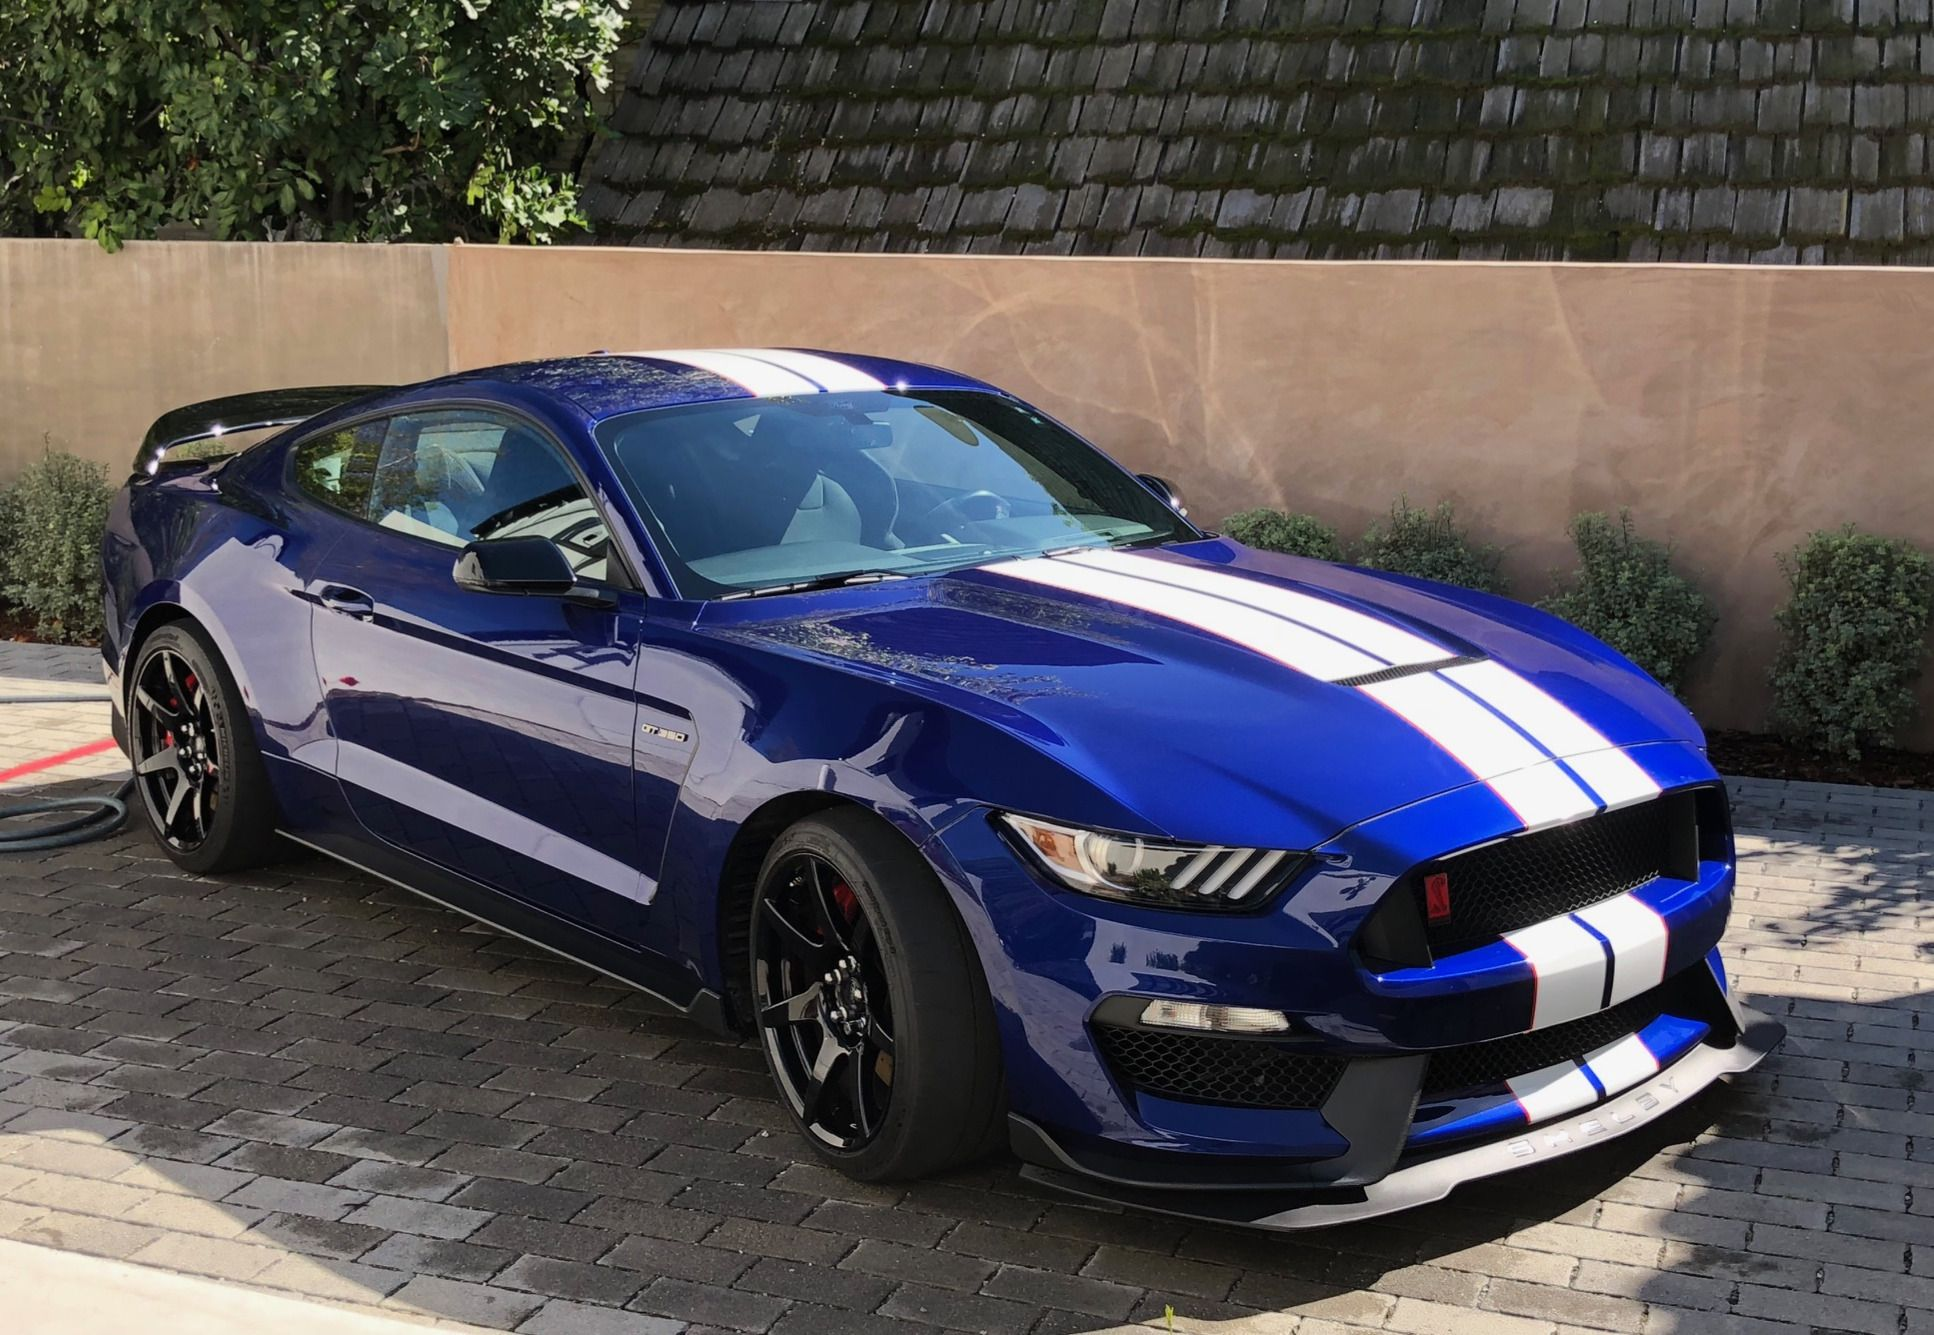 6k Mile 2016 Ford Mustang Shelby Gt350r Shelby Gt350r Mustang Shelby Ford Mustang Shelby